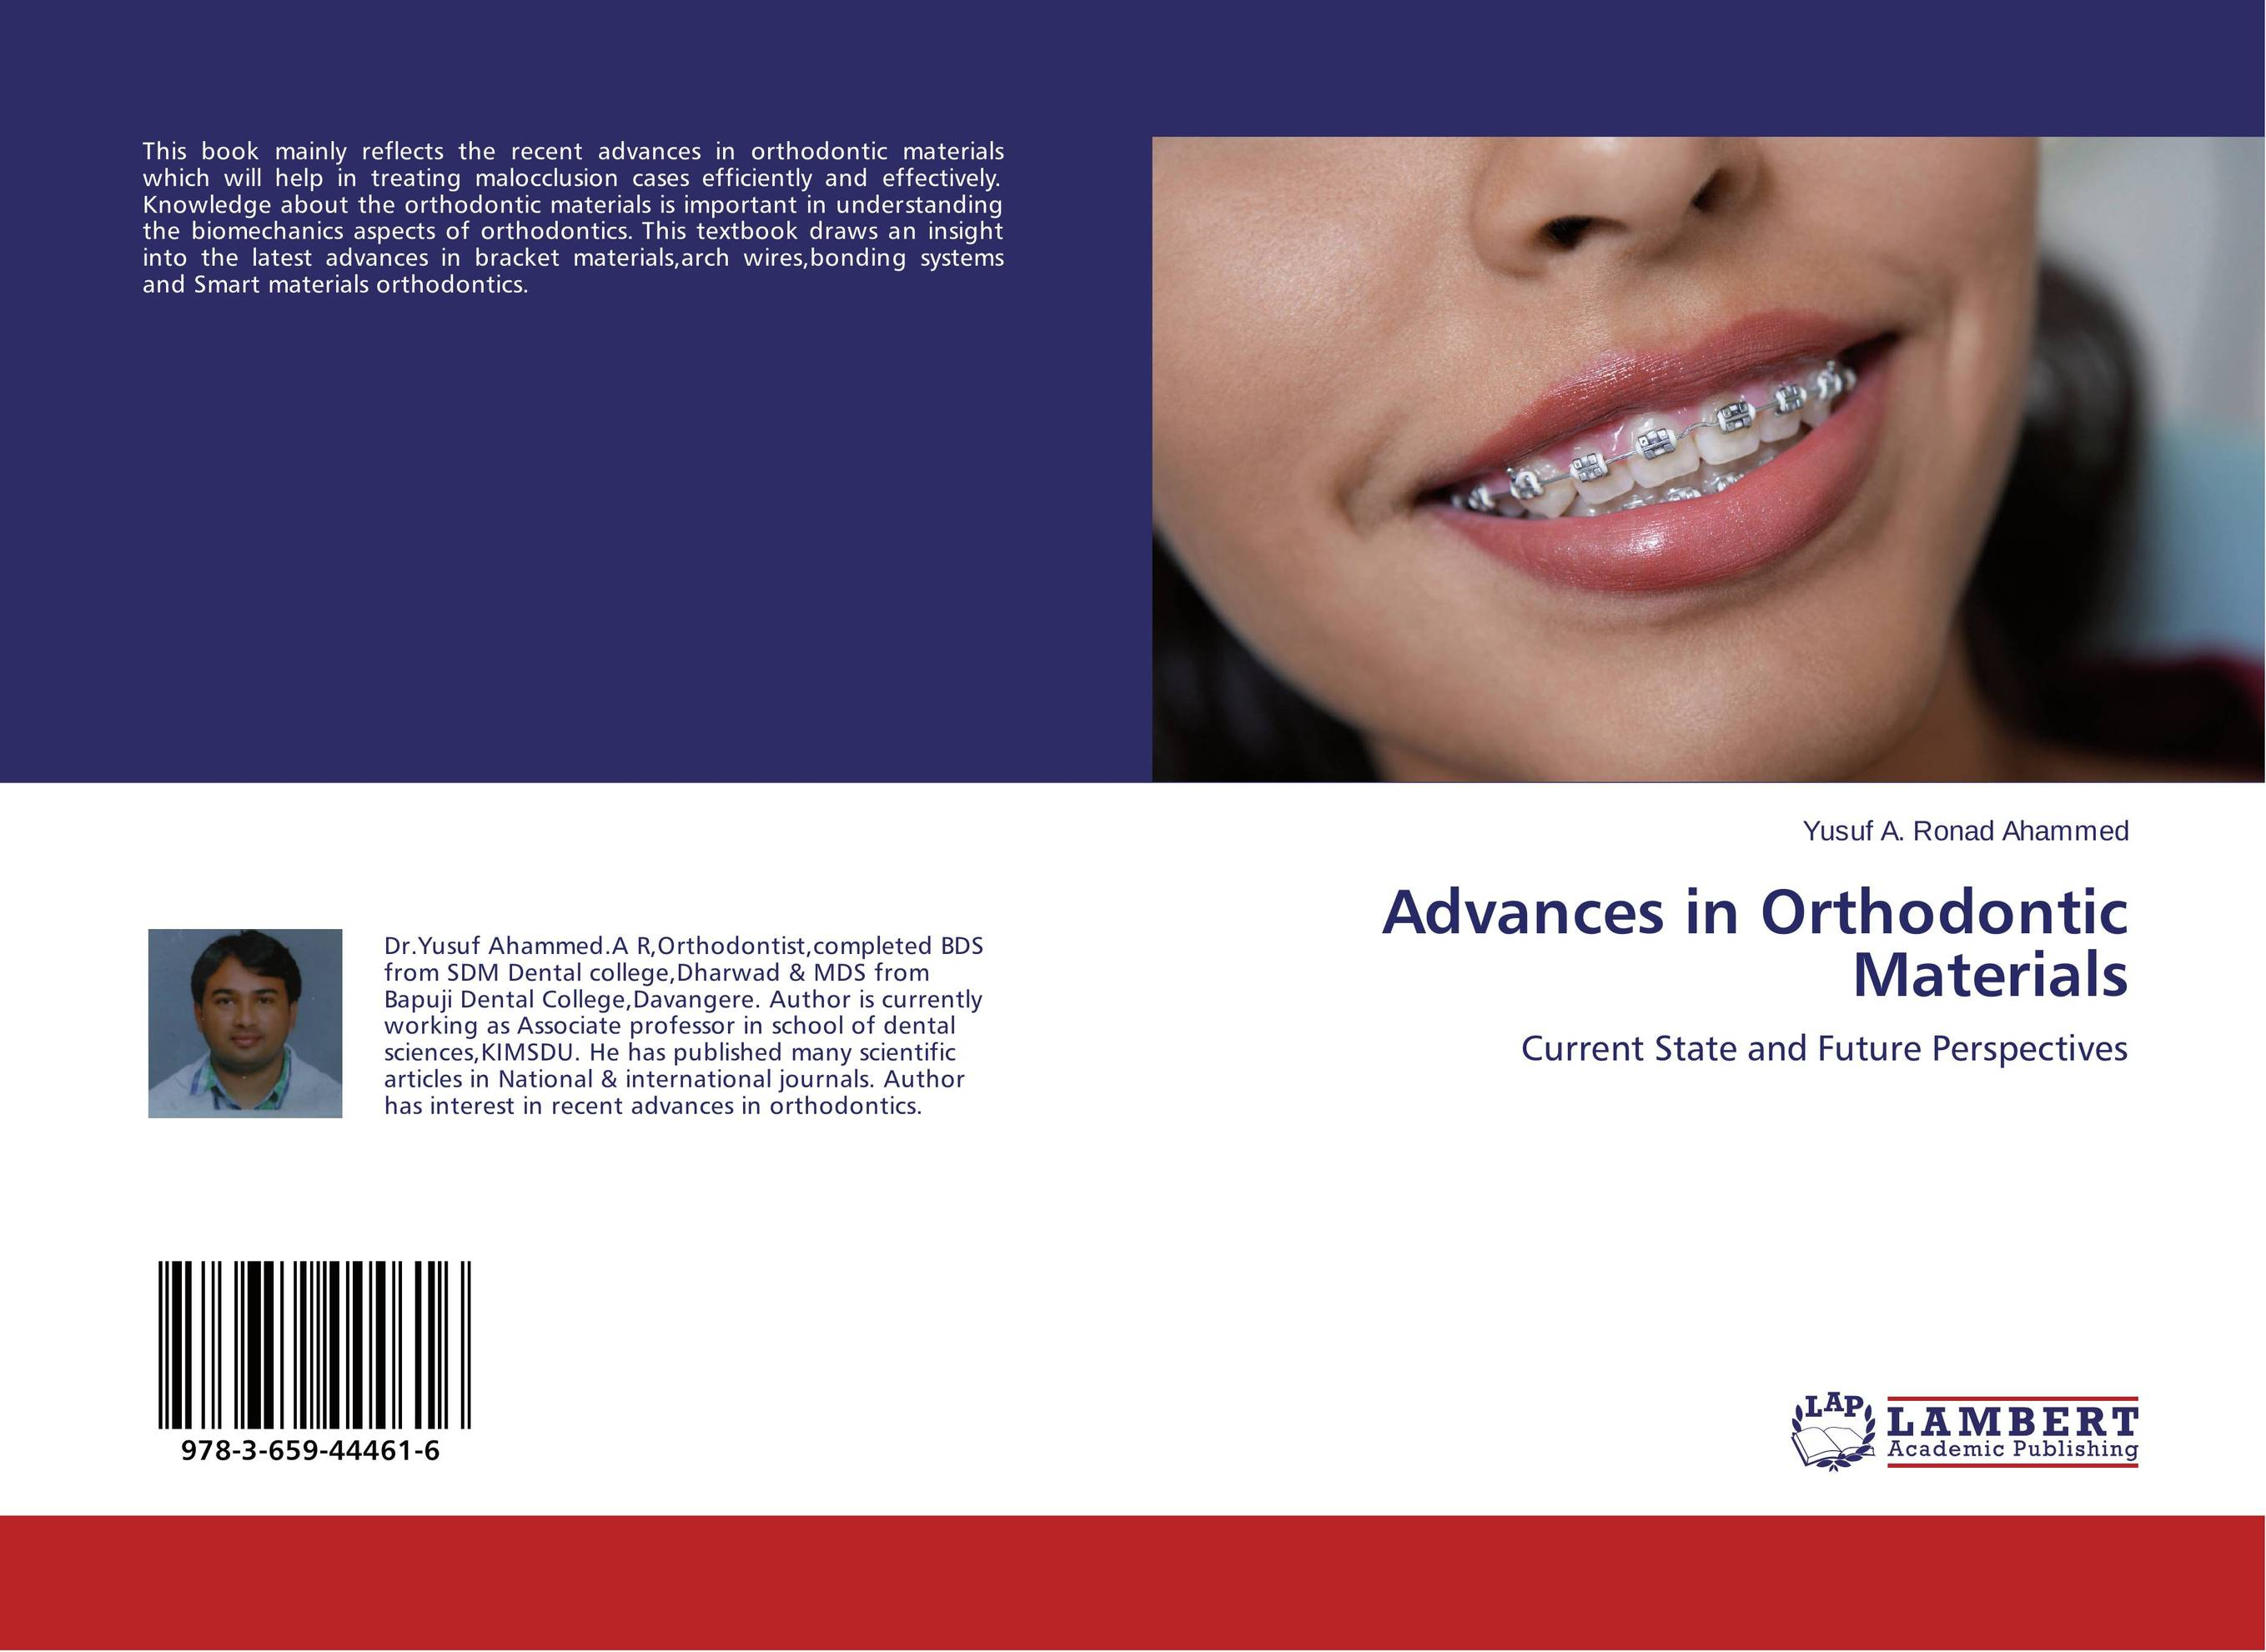 Advances in Orthodontic Materials advances in electronic ceramic materials